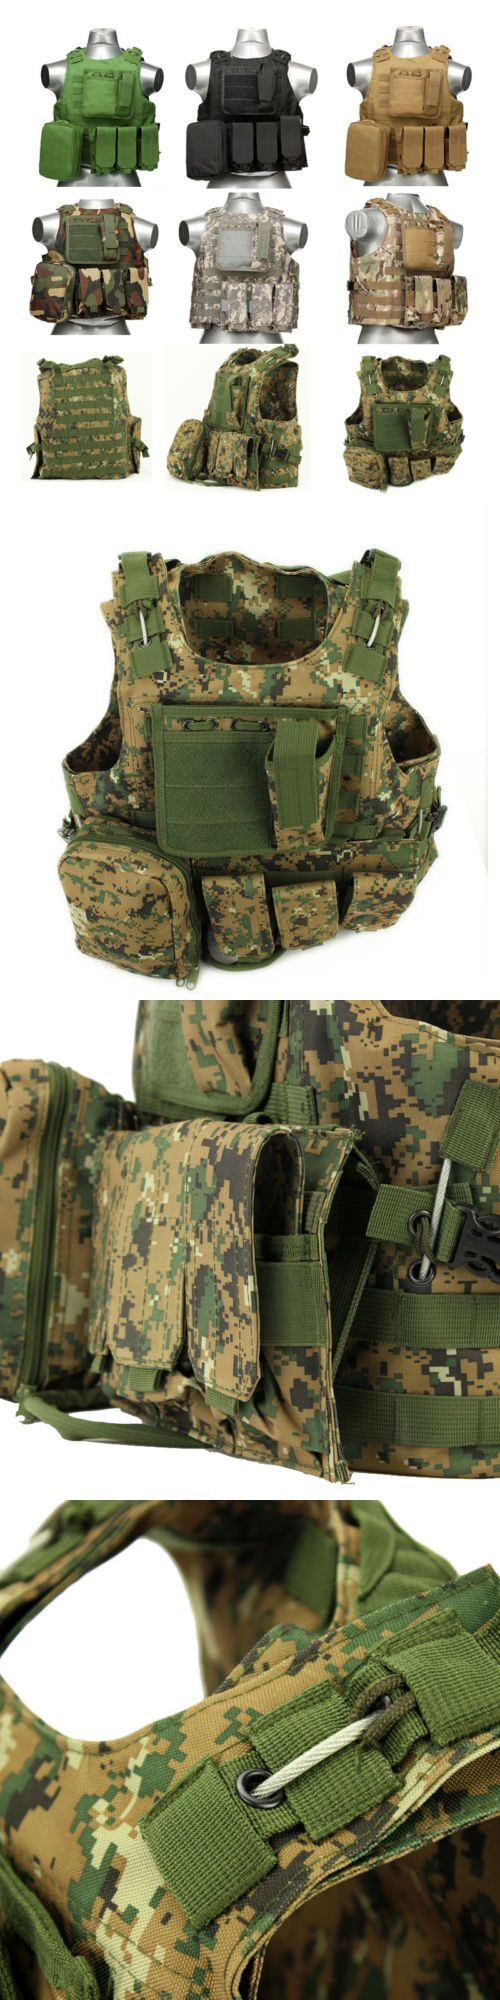 Chest Rigs and Tactical Vests 177891: Usmc Camouflag Vest Airsoft Tactical Military Molle Combat Assault Plate Carrier -> BUY IT NOW ONLY: $38.99 on eBay!